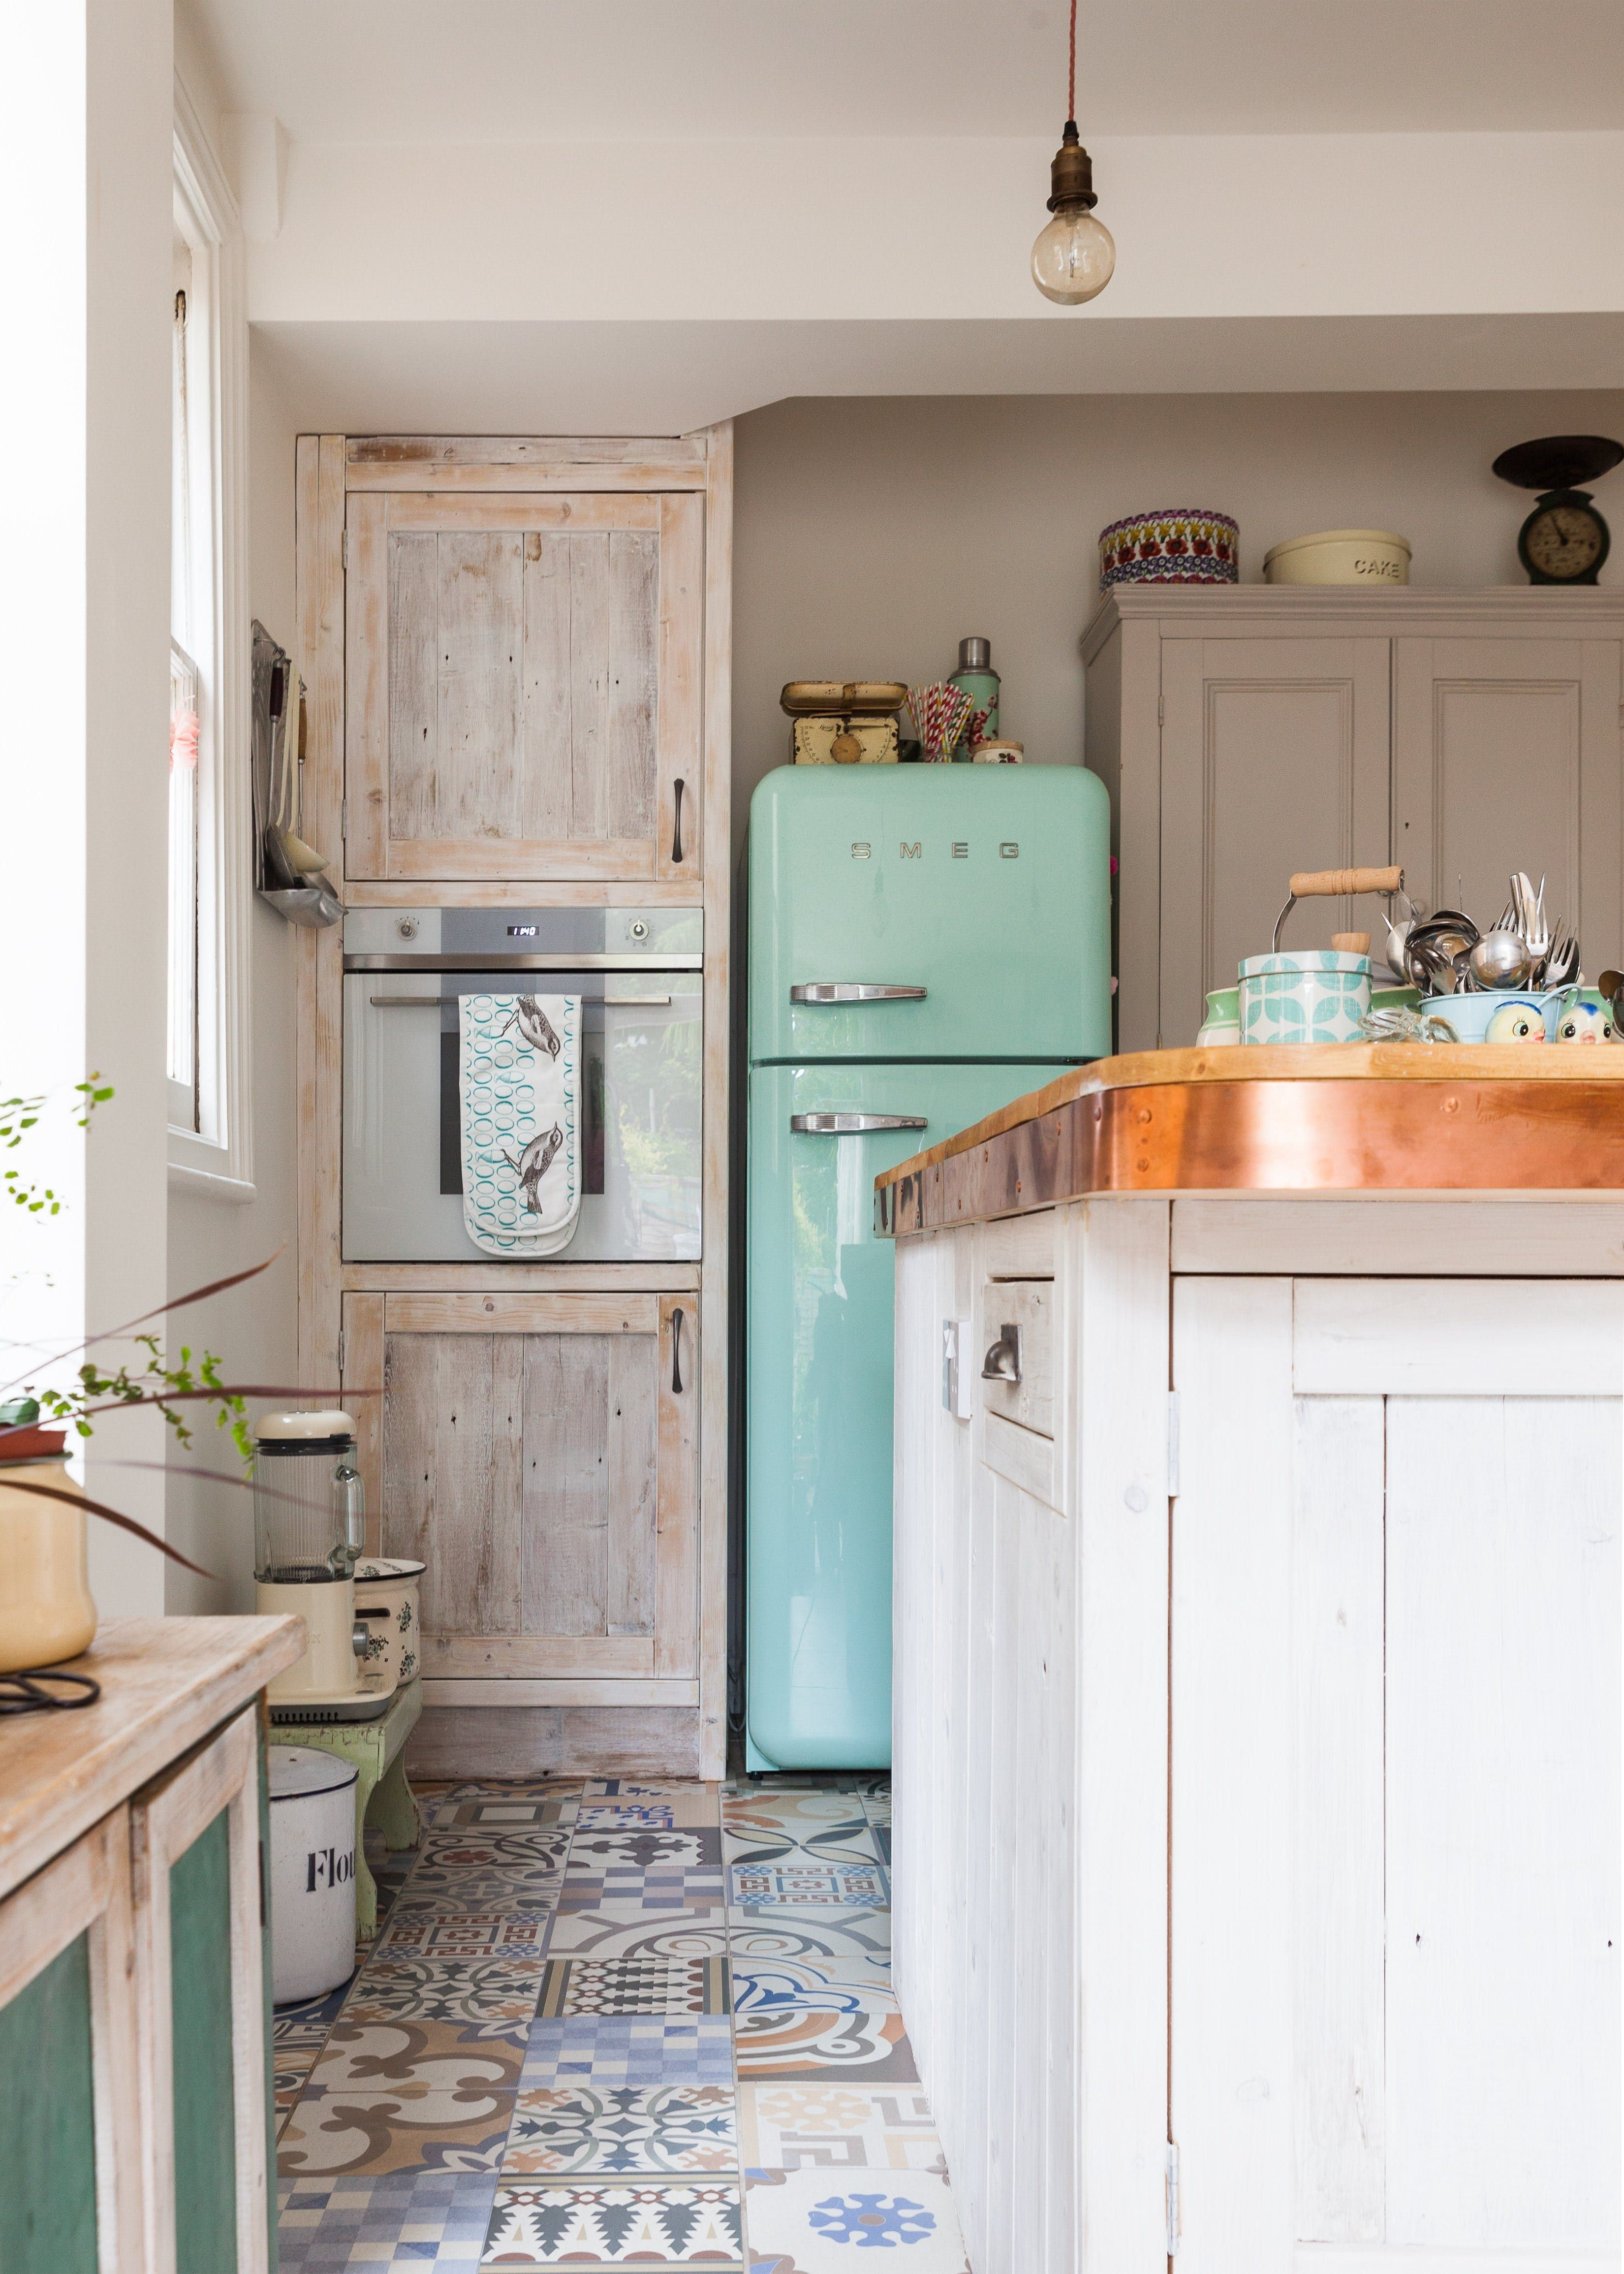 the 5 questions you should always ask before buying a big appliance